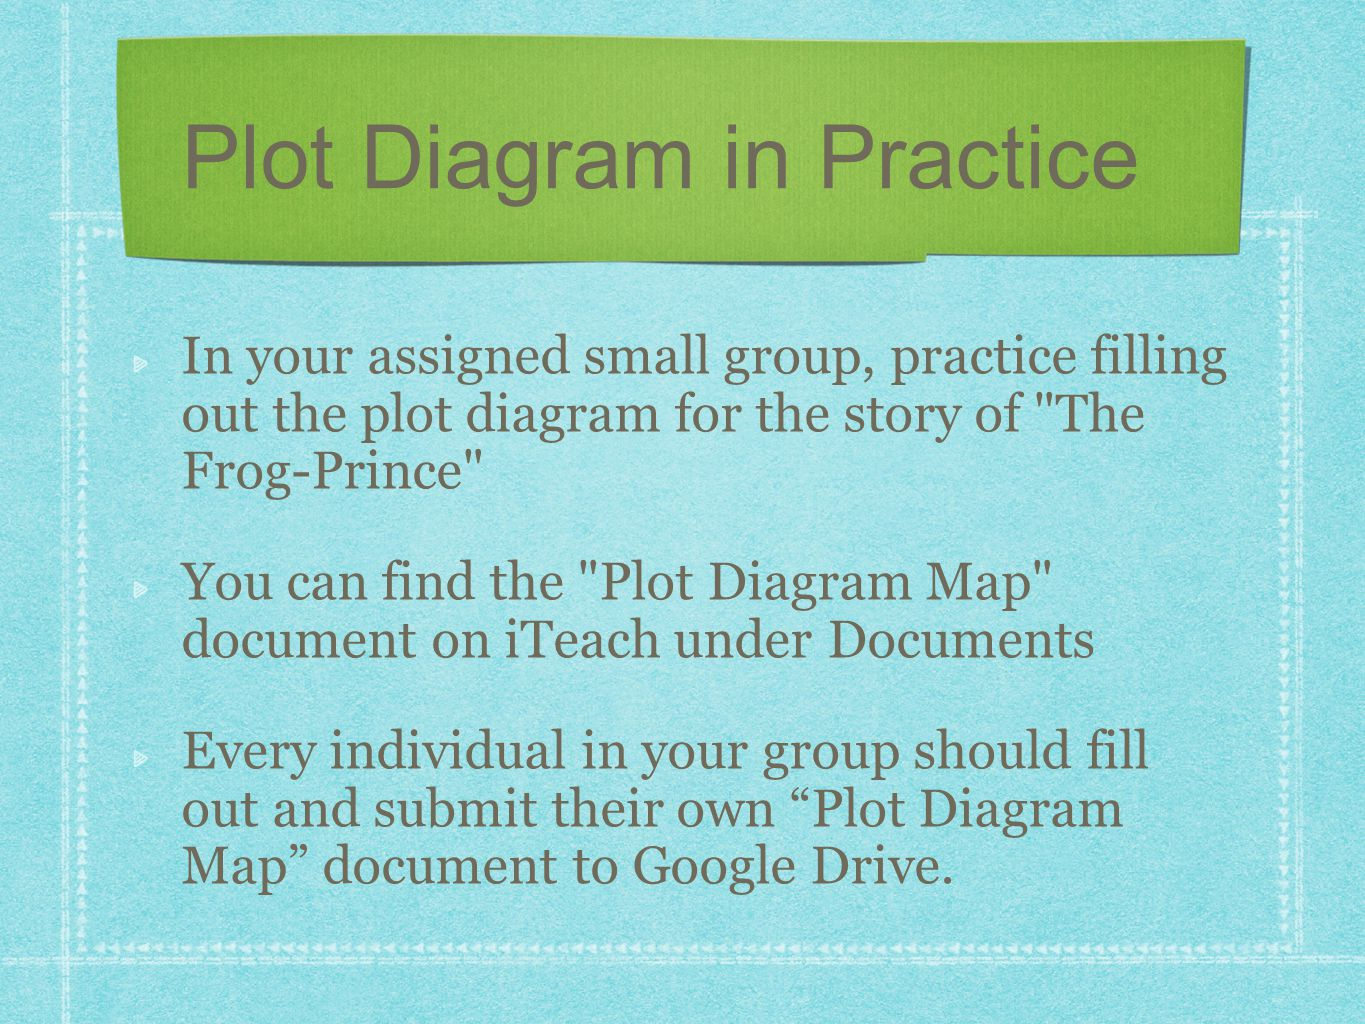 In your assigned small group, practice filling out the plot diagram for the story of